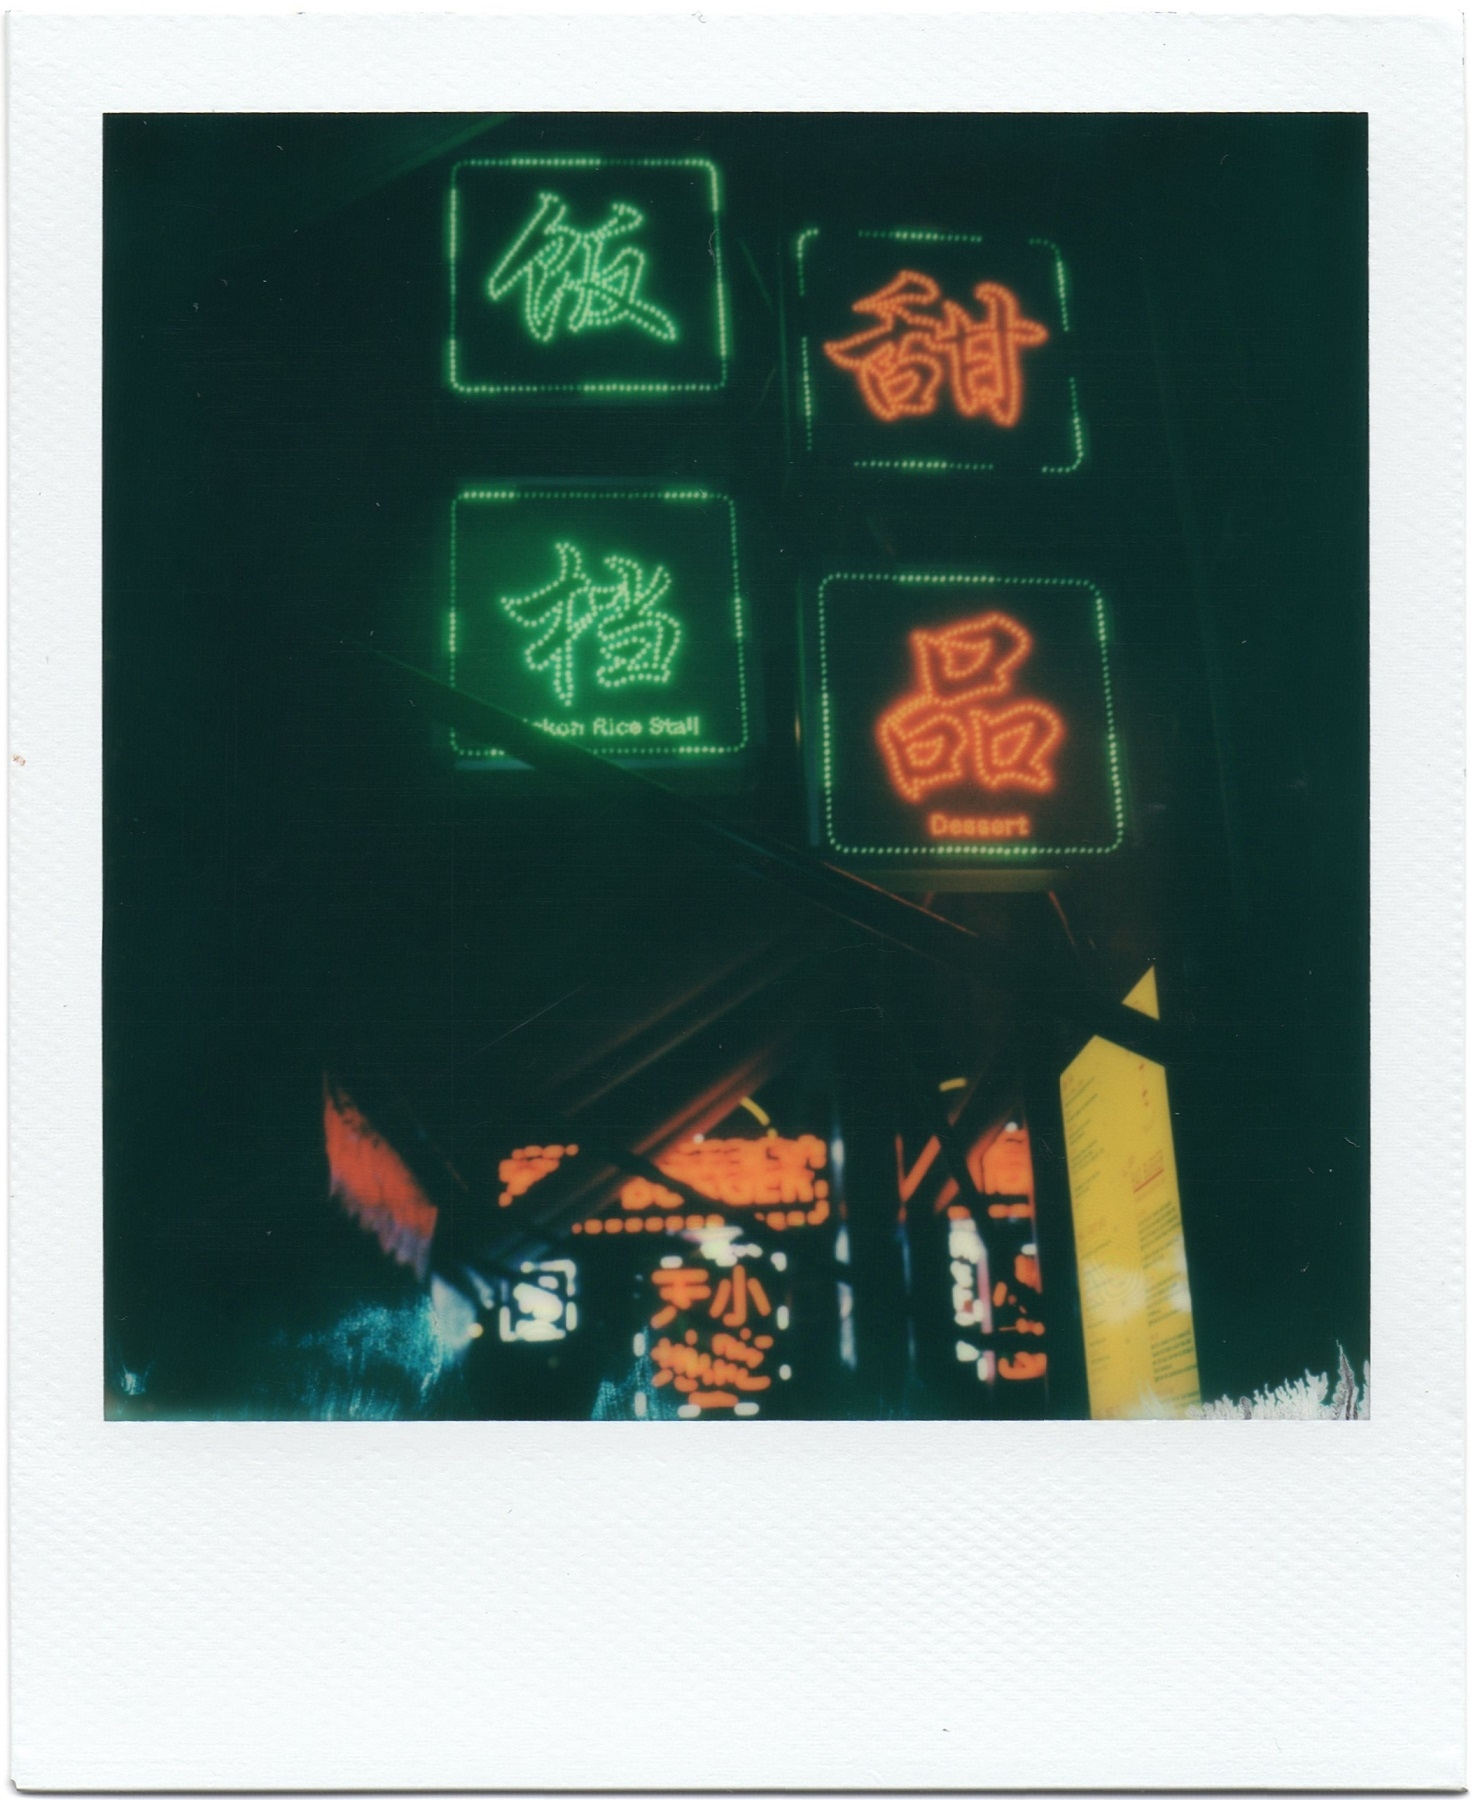 All These City Lights | Polaroid SLR680 | Impossible Project Color 600 | Julia Beyer